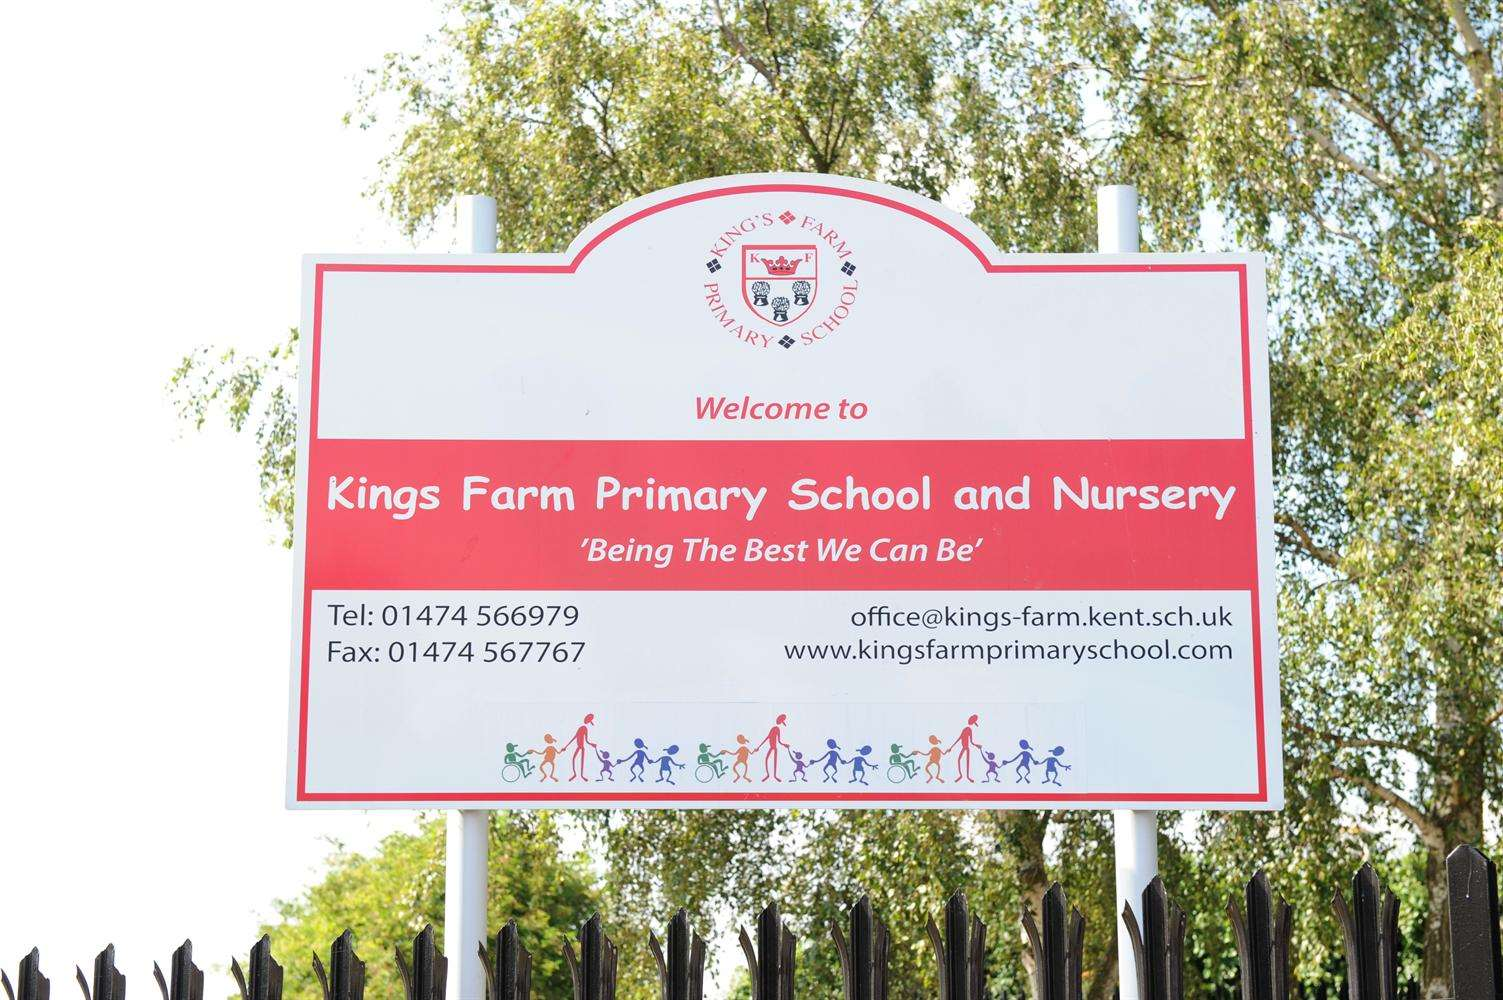 Kings Farm Primary School featured on a Dispatches investigation into exam cheating